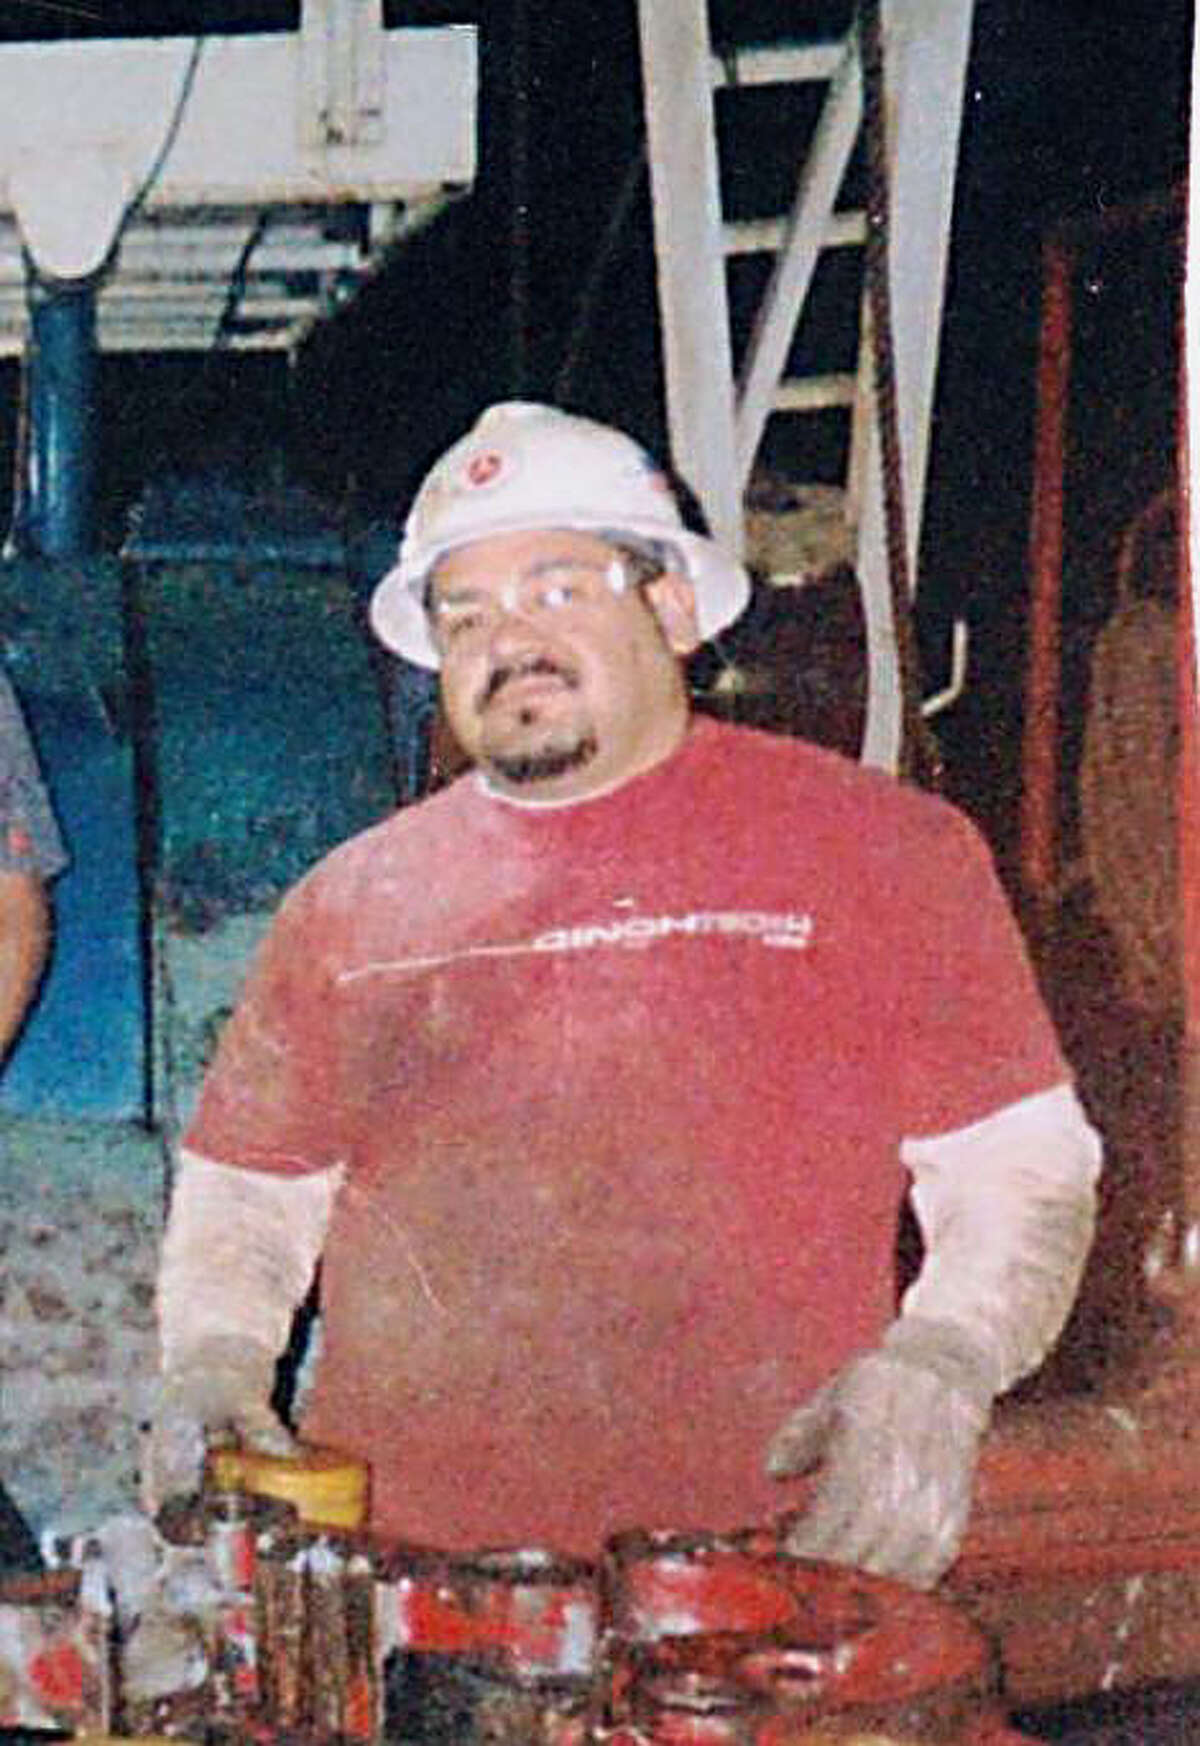 Felipe Saiz was standing on a platform near the top of Rig 11 at a West Texas drill site one morning in June when the rig collapsed and killed him.